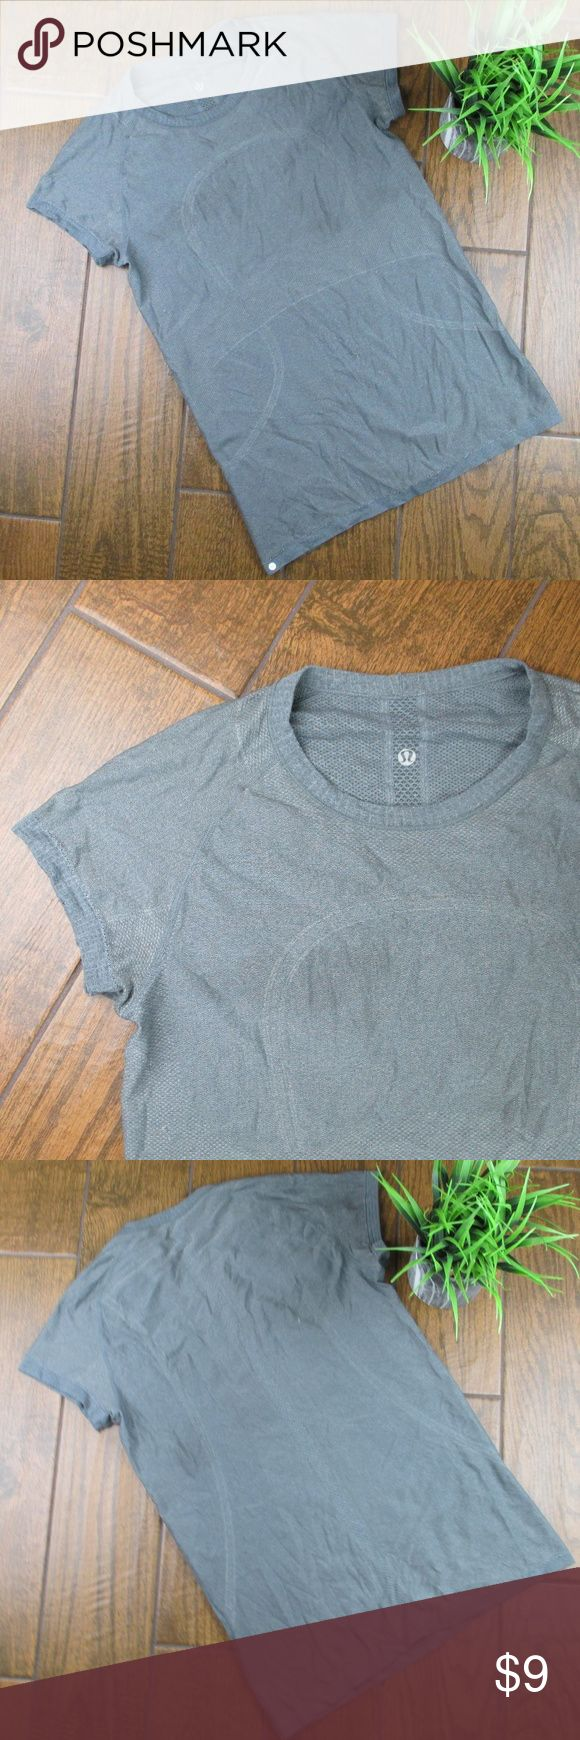 10 Lululemon Work Out Top Gray PRICE IS FIRM Lululemon athletic shirt Gray Size 10 PRICE IS FIRM The price is $9 because there is a flaw, there is a couple of small pulls on the shirt Other than that, there is no damage Bust from pit to pit is 20 inches Length is 32 inches Super stretchy  Add to a bundle for an automatic discount  Colors may very due to lighting, seller does its best to portray the right color. Please inspect all photos.  #J075 lululemon athletica Tops Tees - Short Sleeve